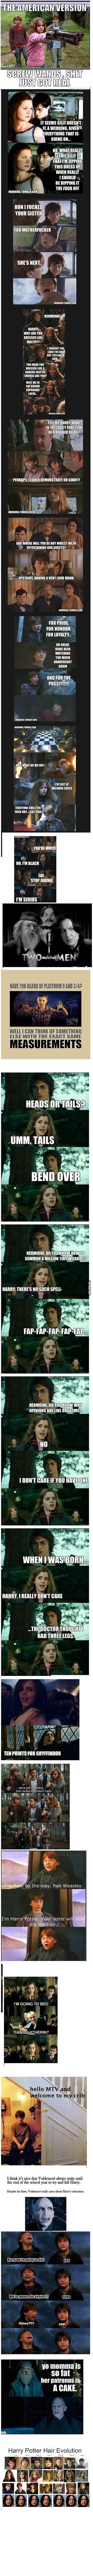 For the love of 9gag